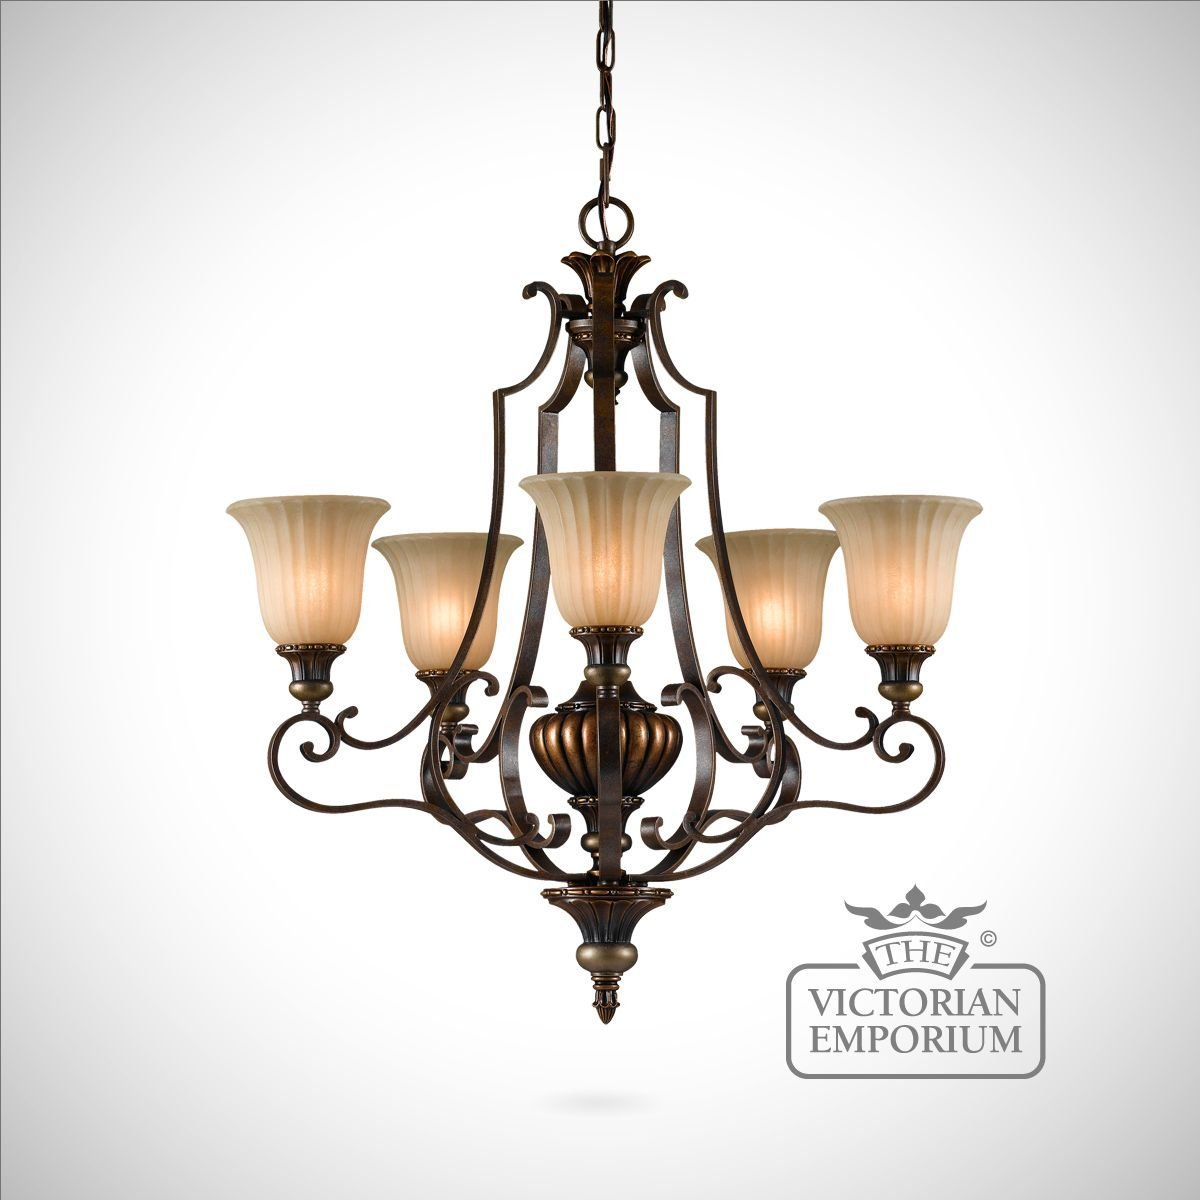 Gold And Bronze Decorative 5 Light Chandelier Interior